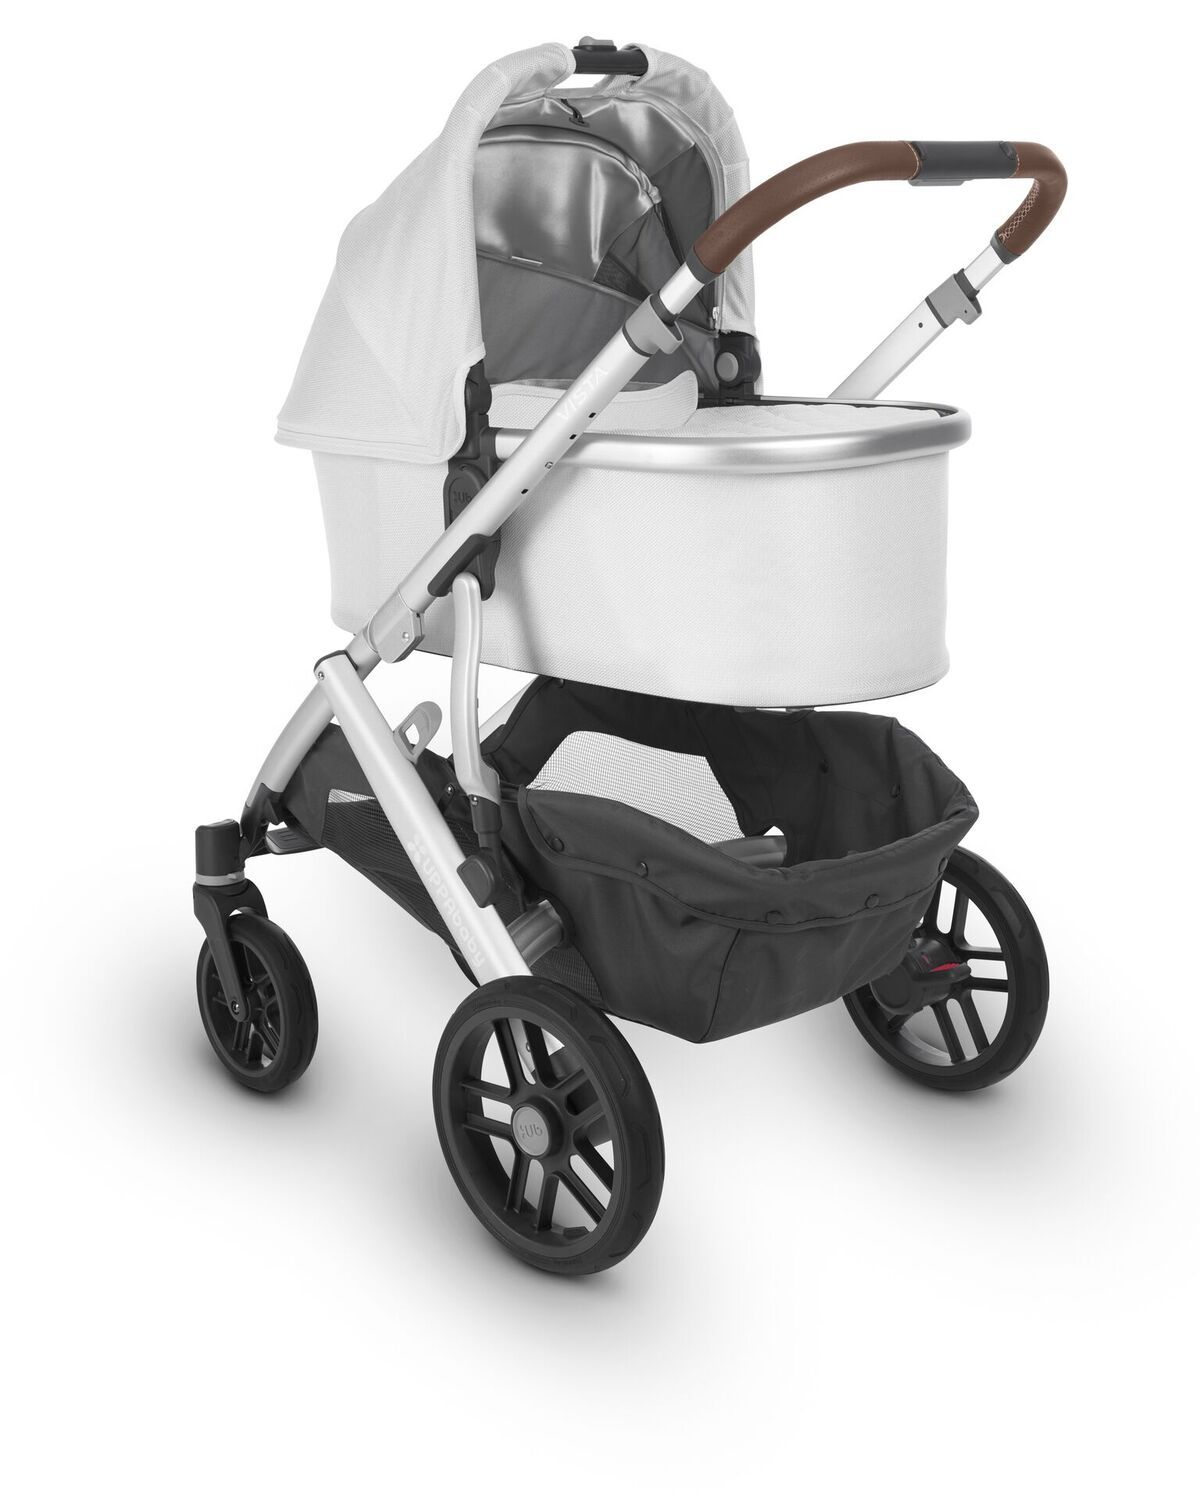 NEW! 2019 UPPAbaby Vista in Bryce With Loads of New